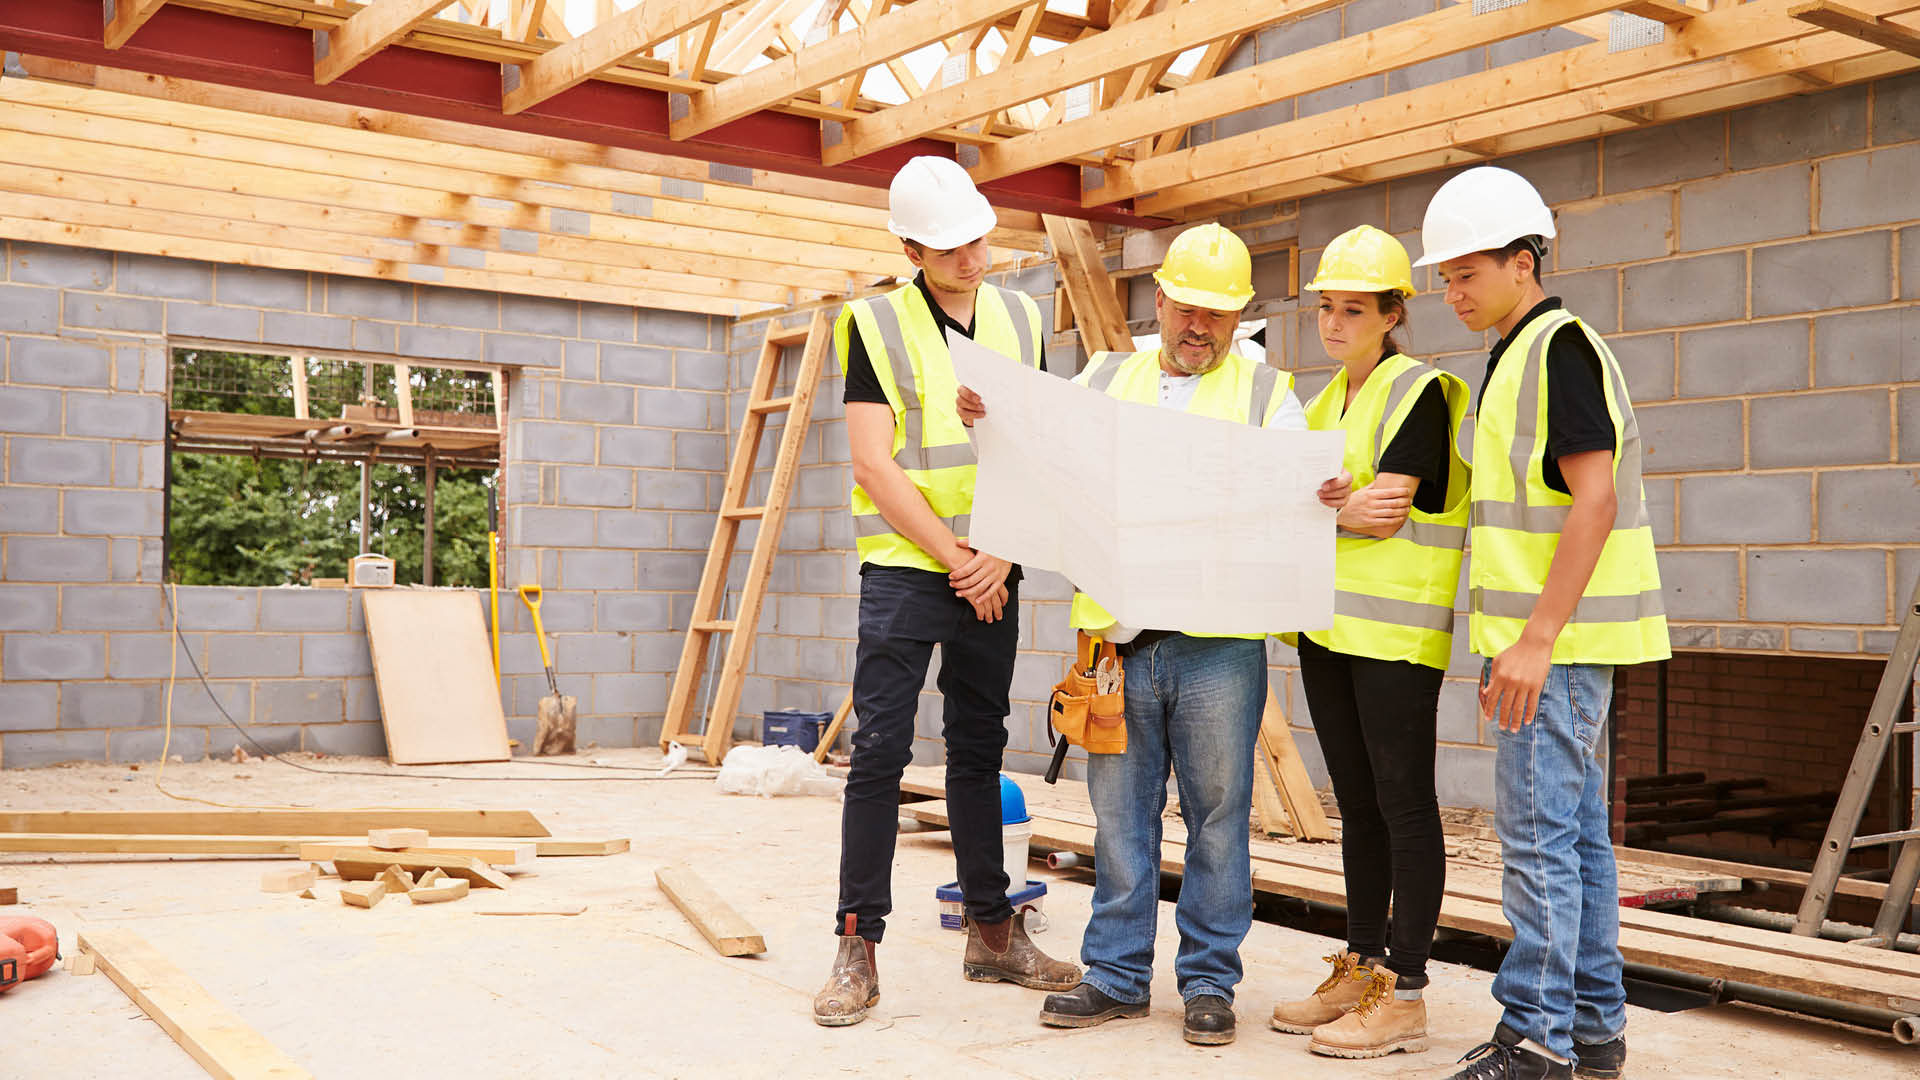 CSQ construction skills queensland short courses funding